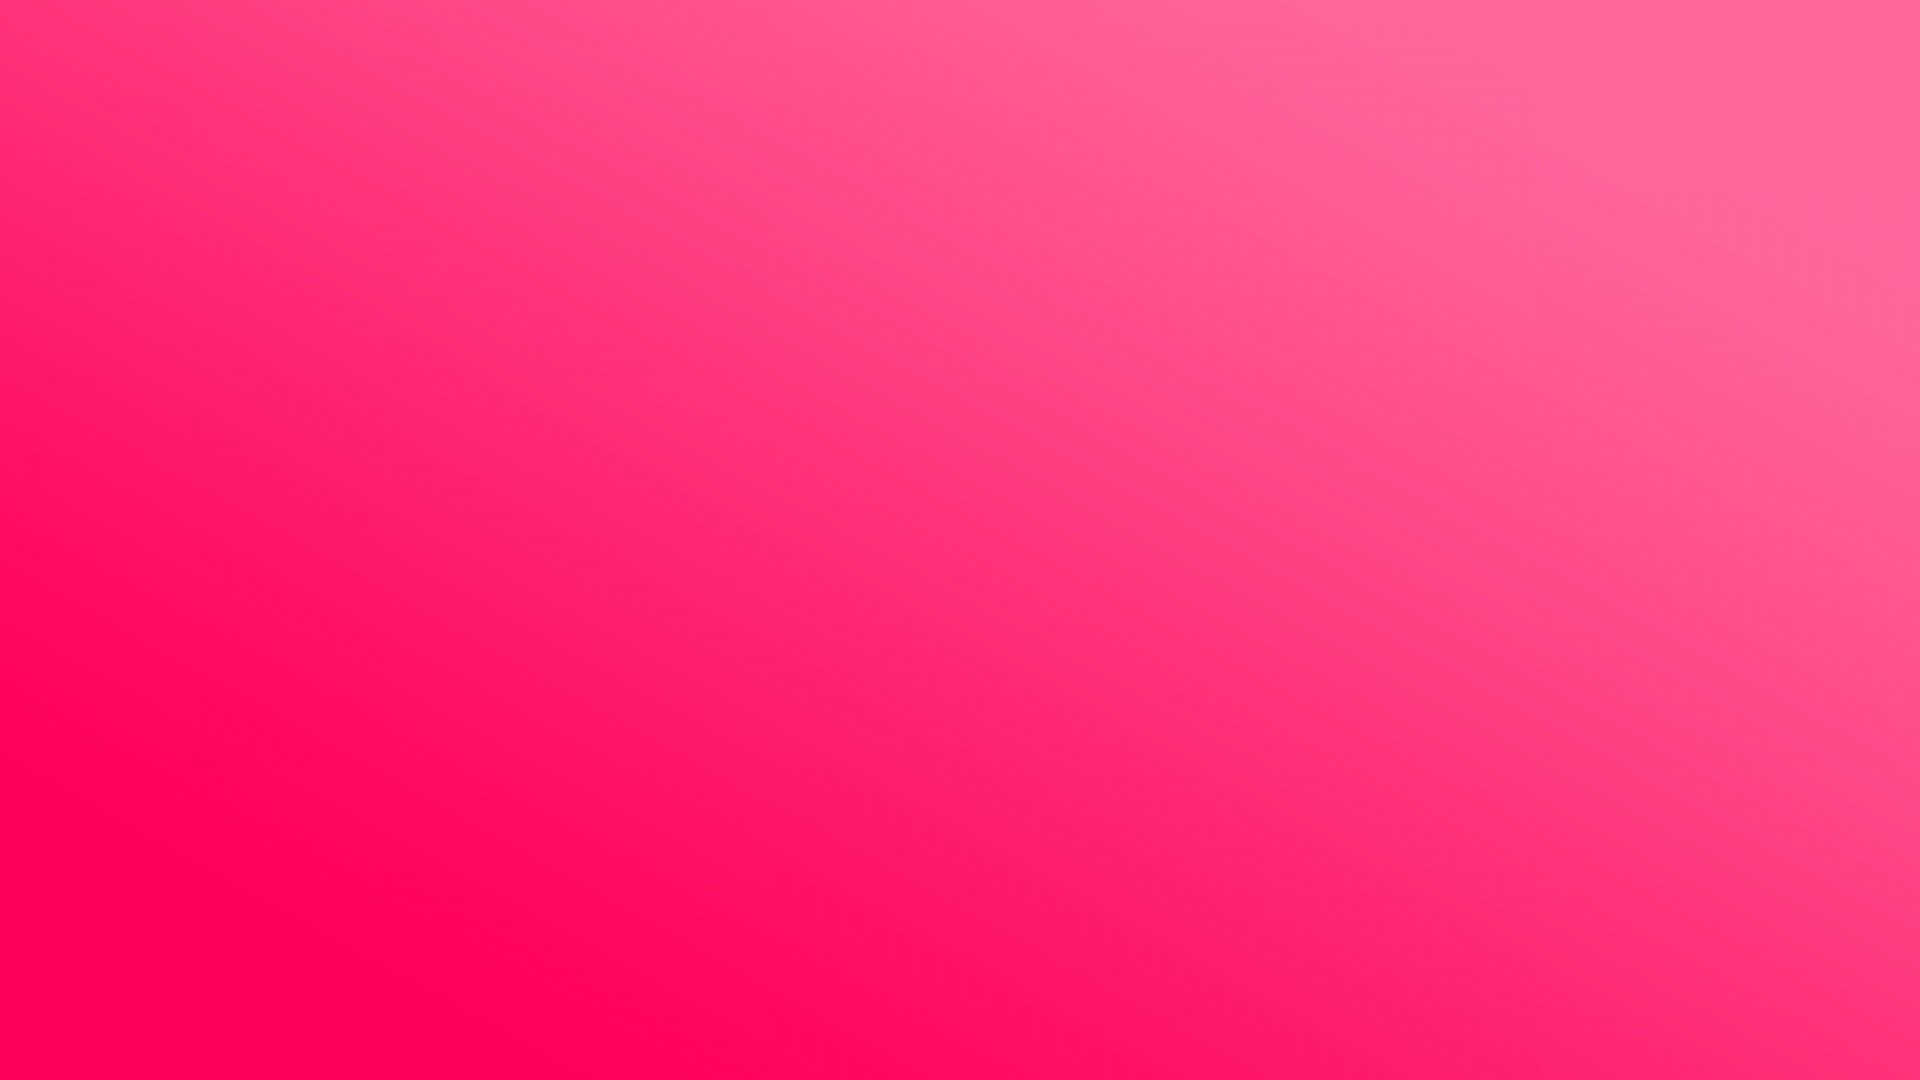 Preview wallpaper pink, solid, color, light, bright 1920×1080